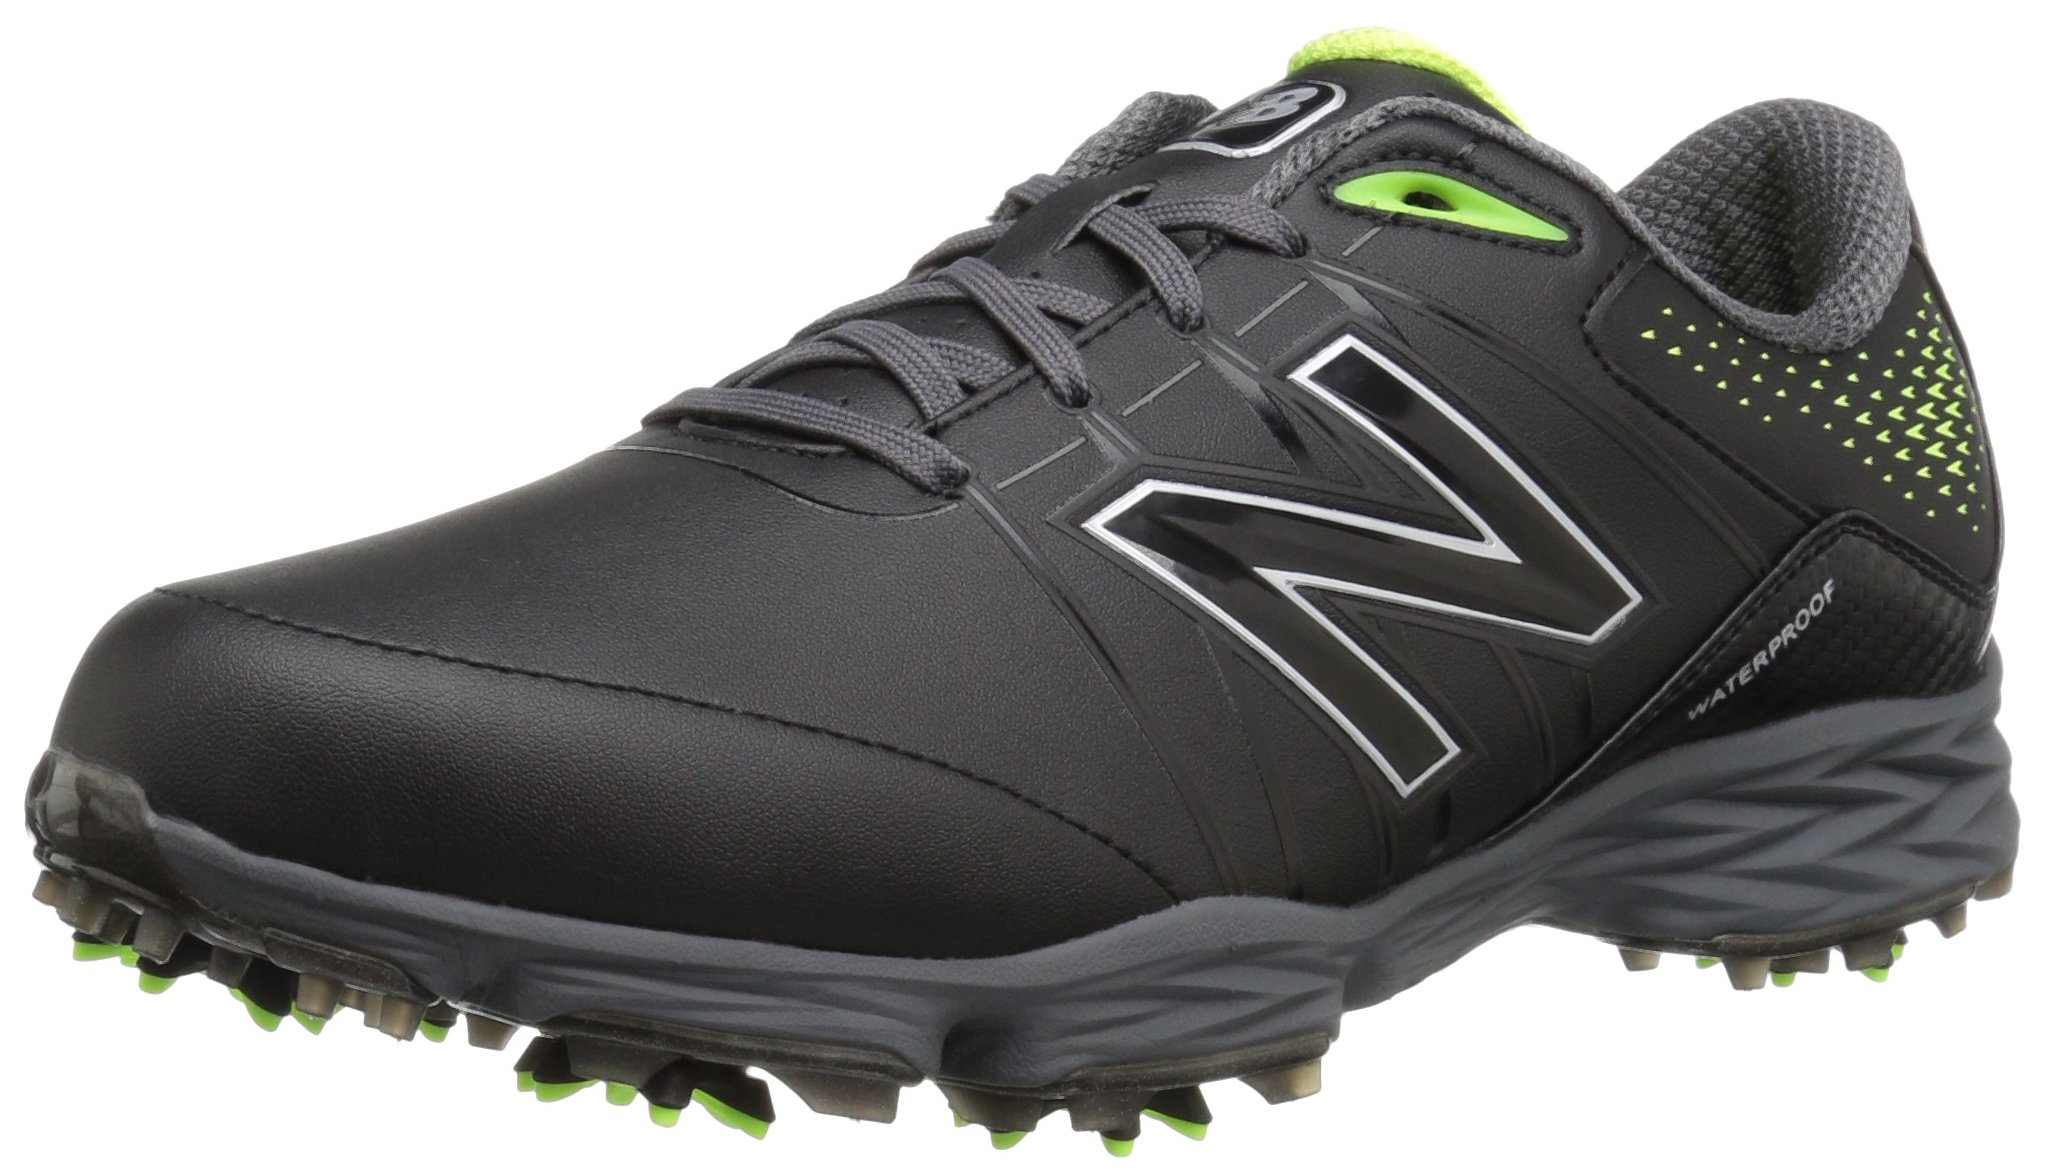 New Balance Men's NBG2004 Waterproof Spiked Comfort Golf Shoe, Black/Green, 8.5 XW US by New Balance